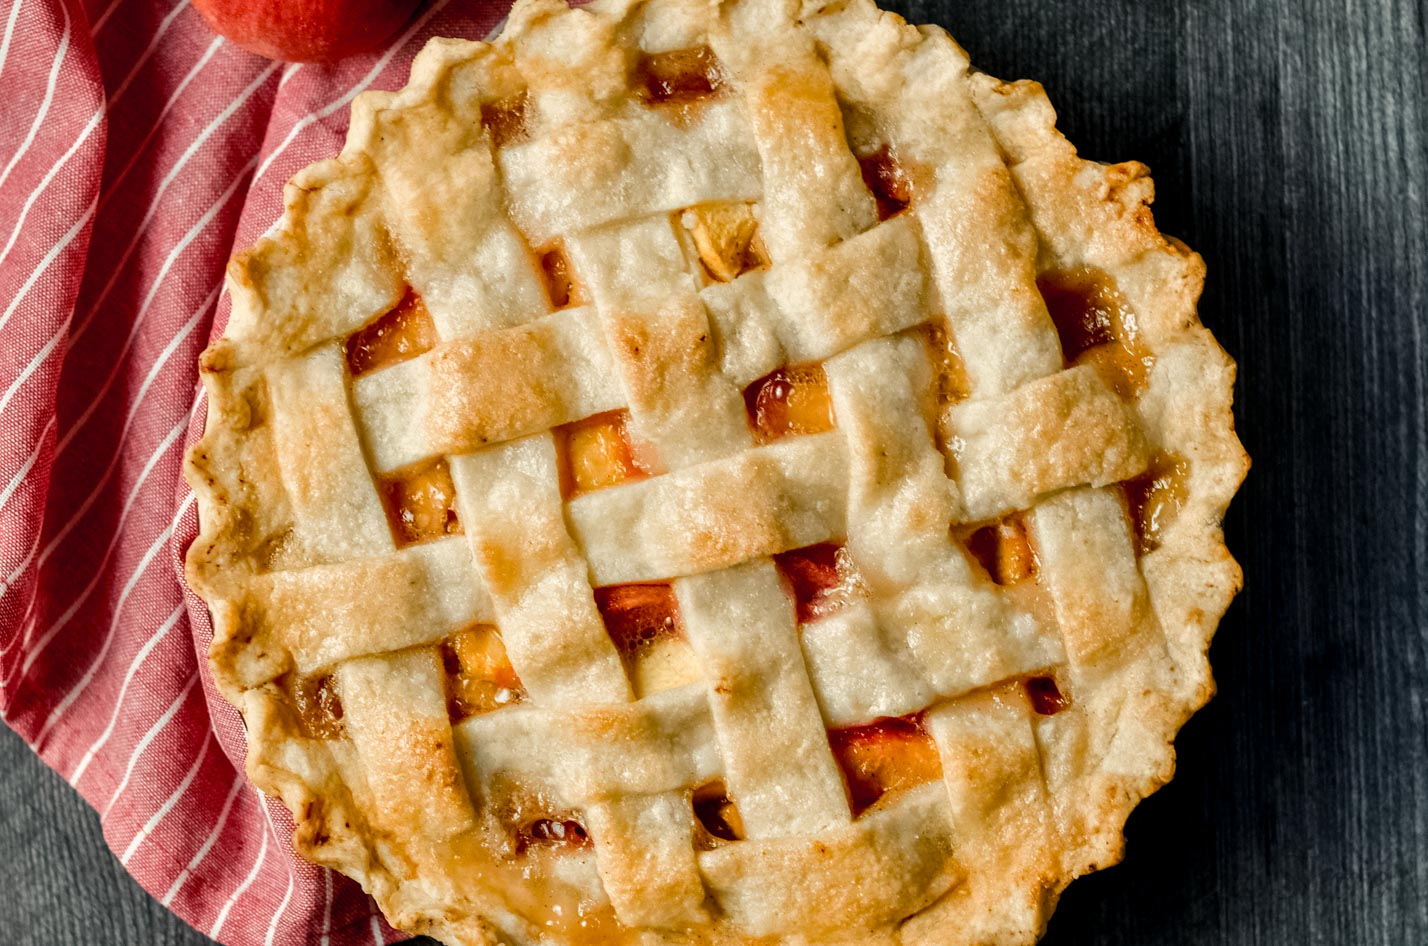 A gluten-free peach pie with a lattice topping.